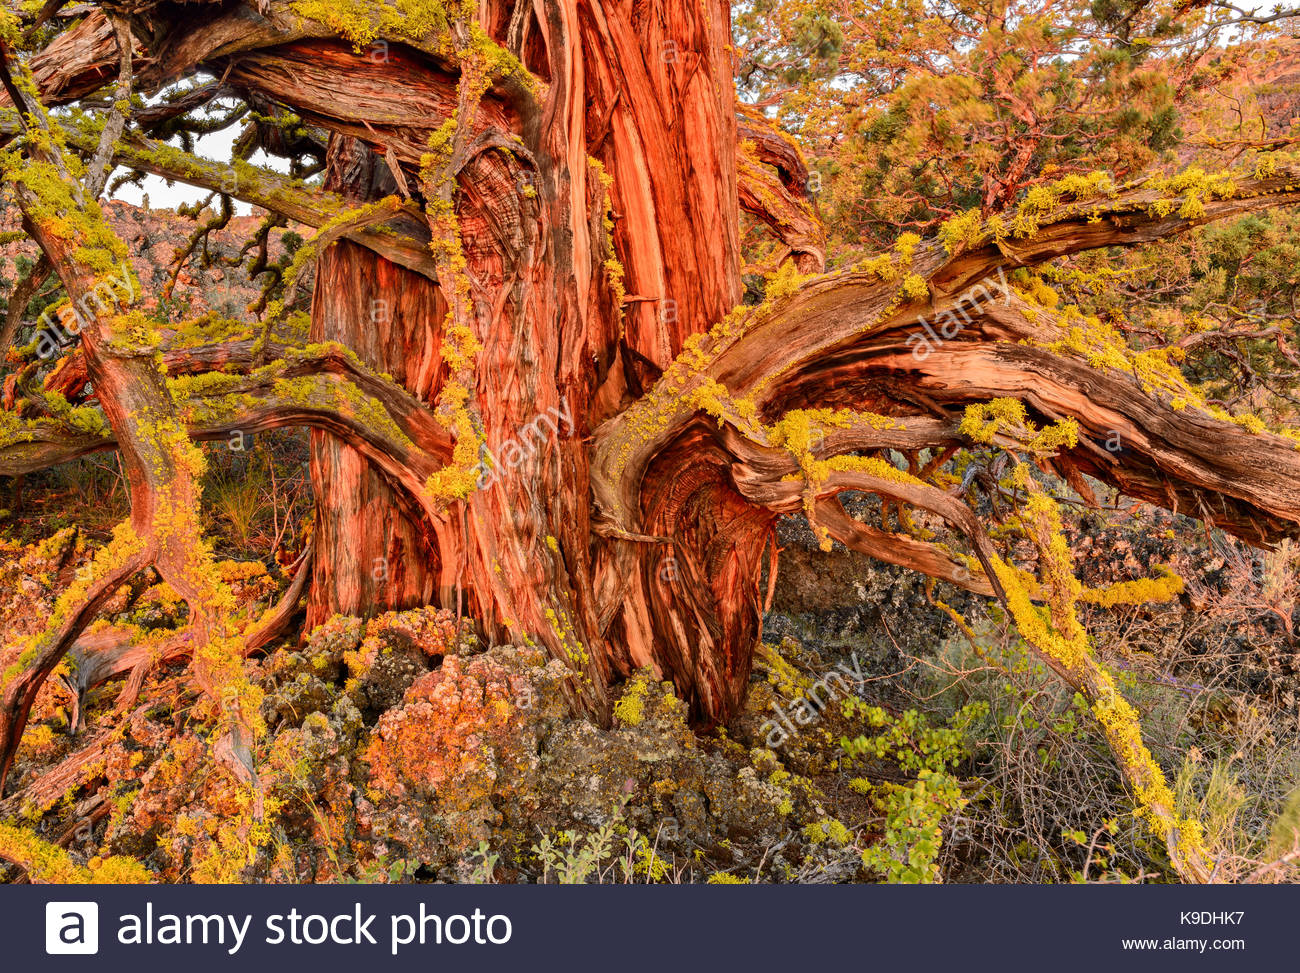 Ancient Knarly Western Juniper with first glow of dawn light, Lava Beds National Monument, California - Stock Image